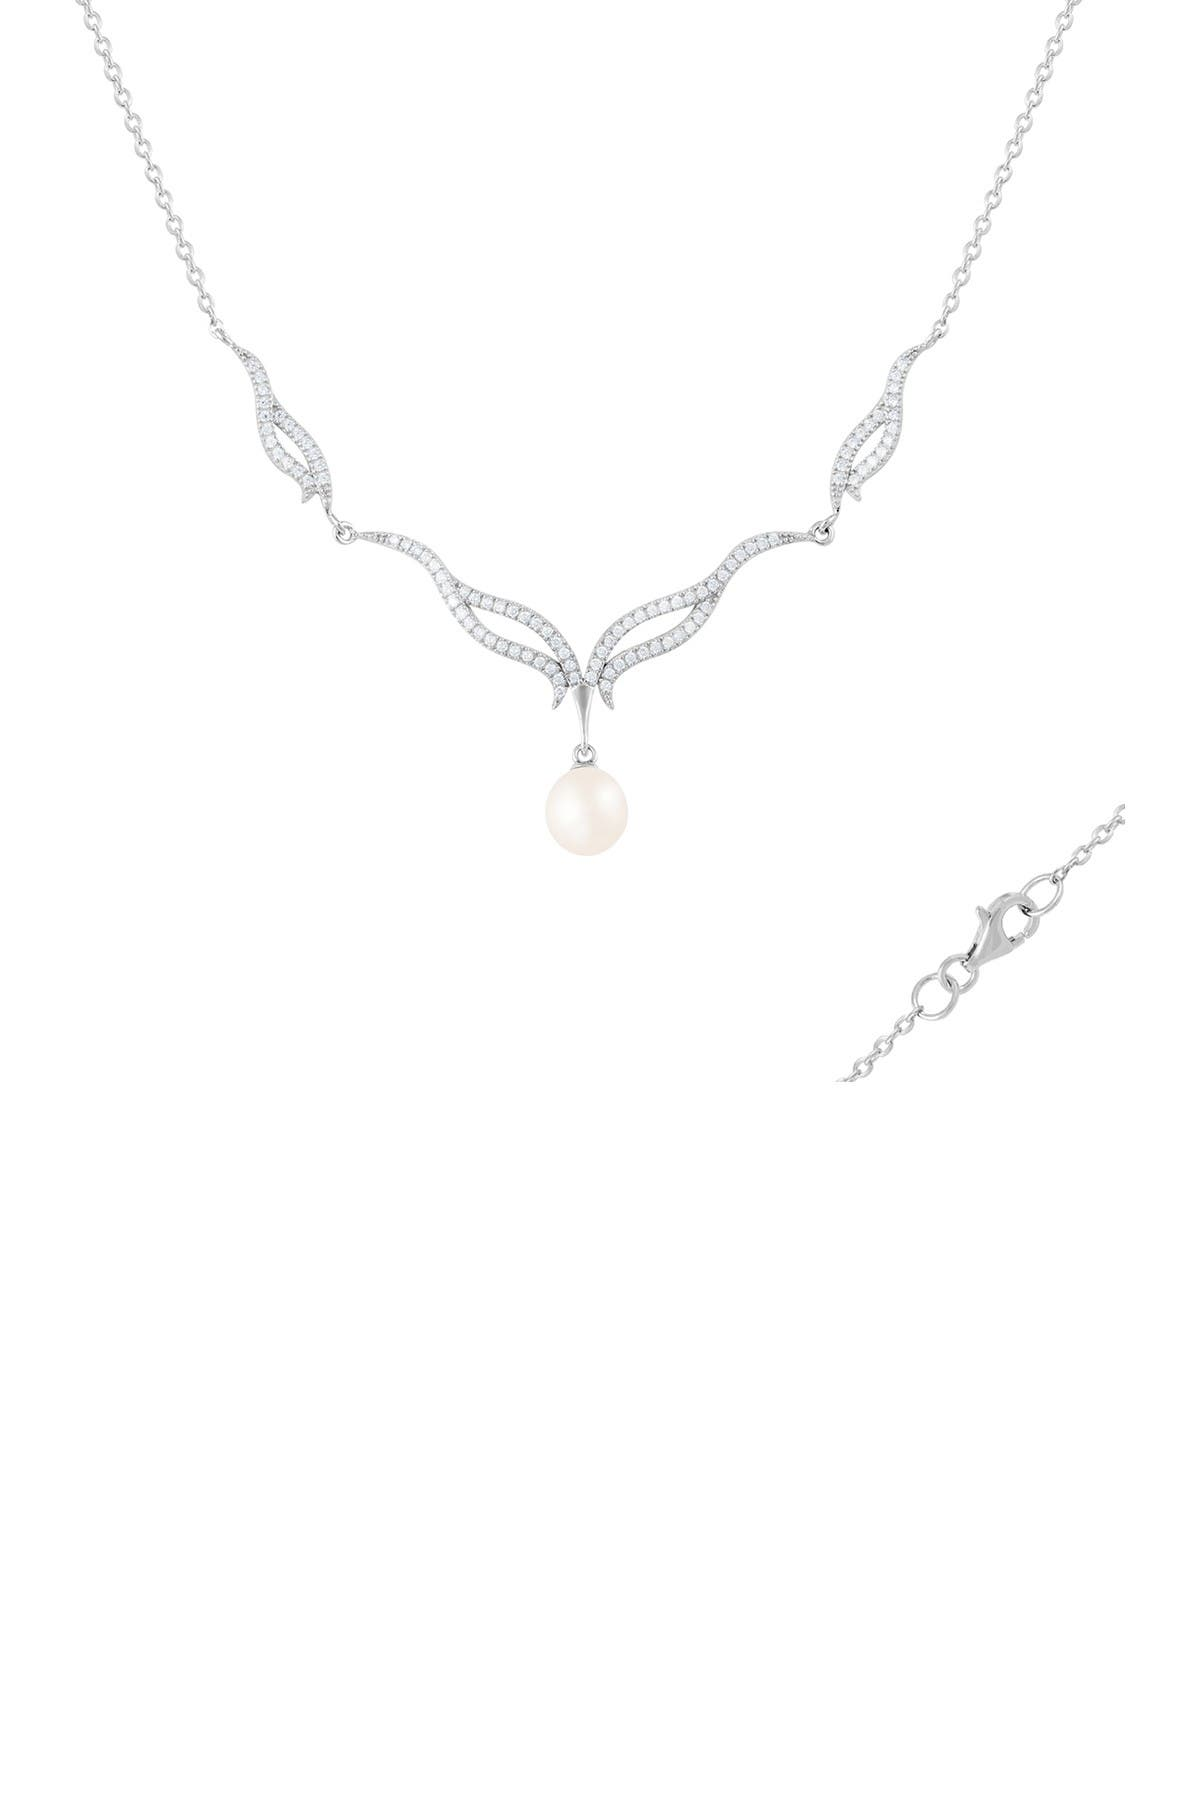 Image of Splendid Pearls 8-9mm Freshwater Pearl Fancy CZ Pendant Necklace